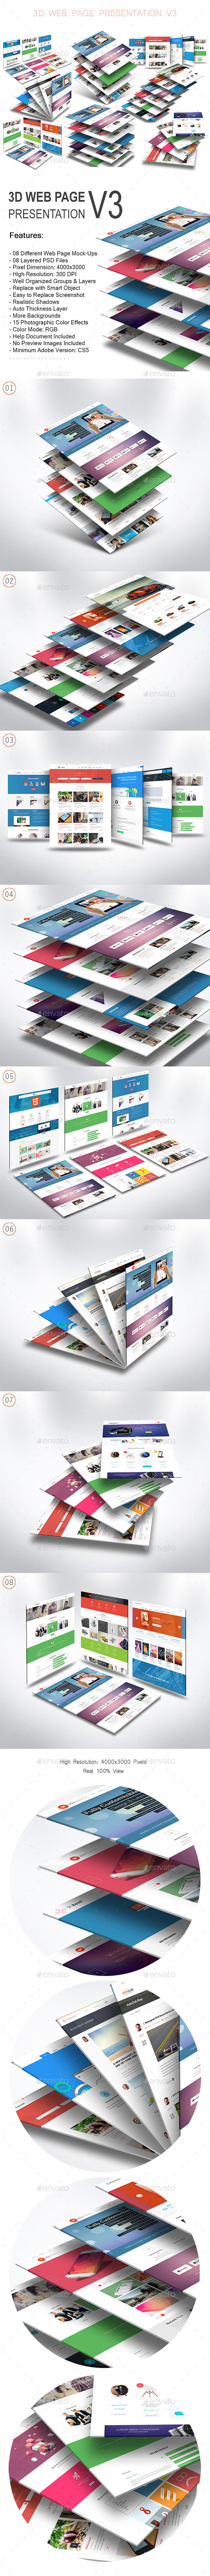 3D Web Page Presentation Mock-Up V3 - Website Displays